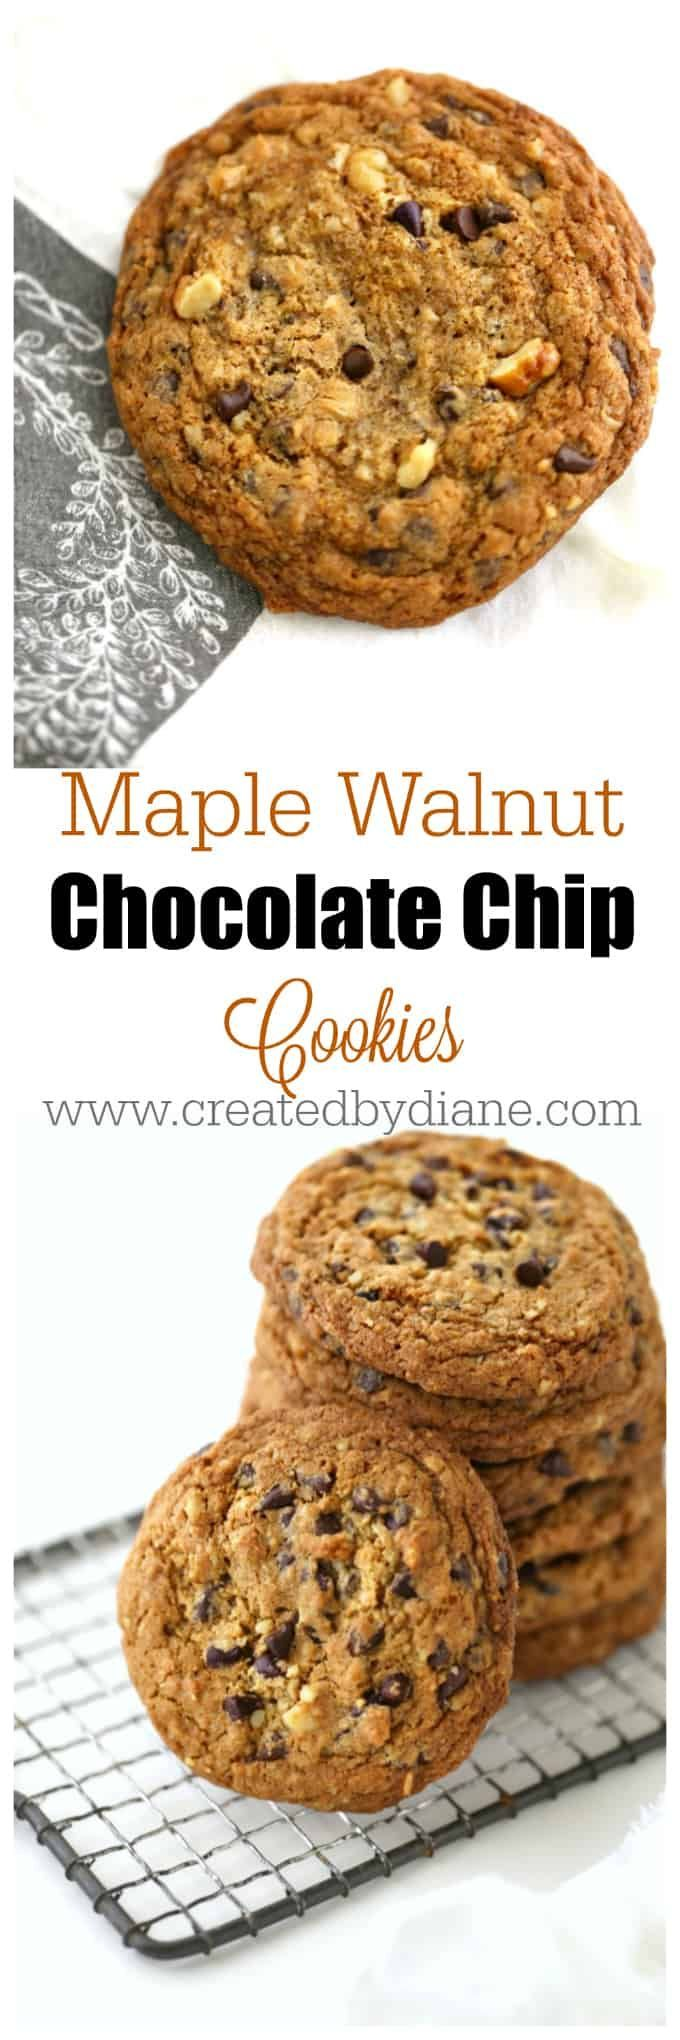 Maple Oatmeal chocolate Chip Cookies that are BIG and delicious, a irresistible flavor that will have you making batches of cookies in no time, they will be devoured quickly! www.createdbydiane.com